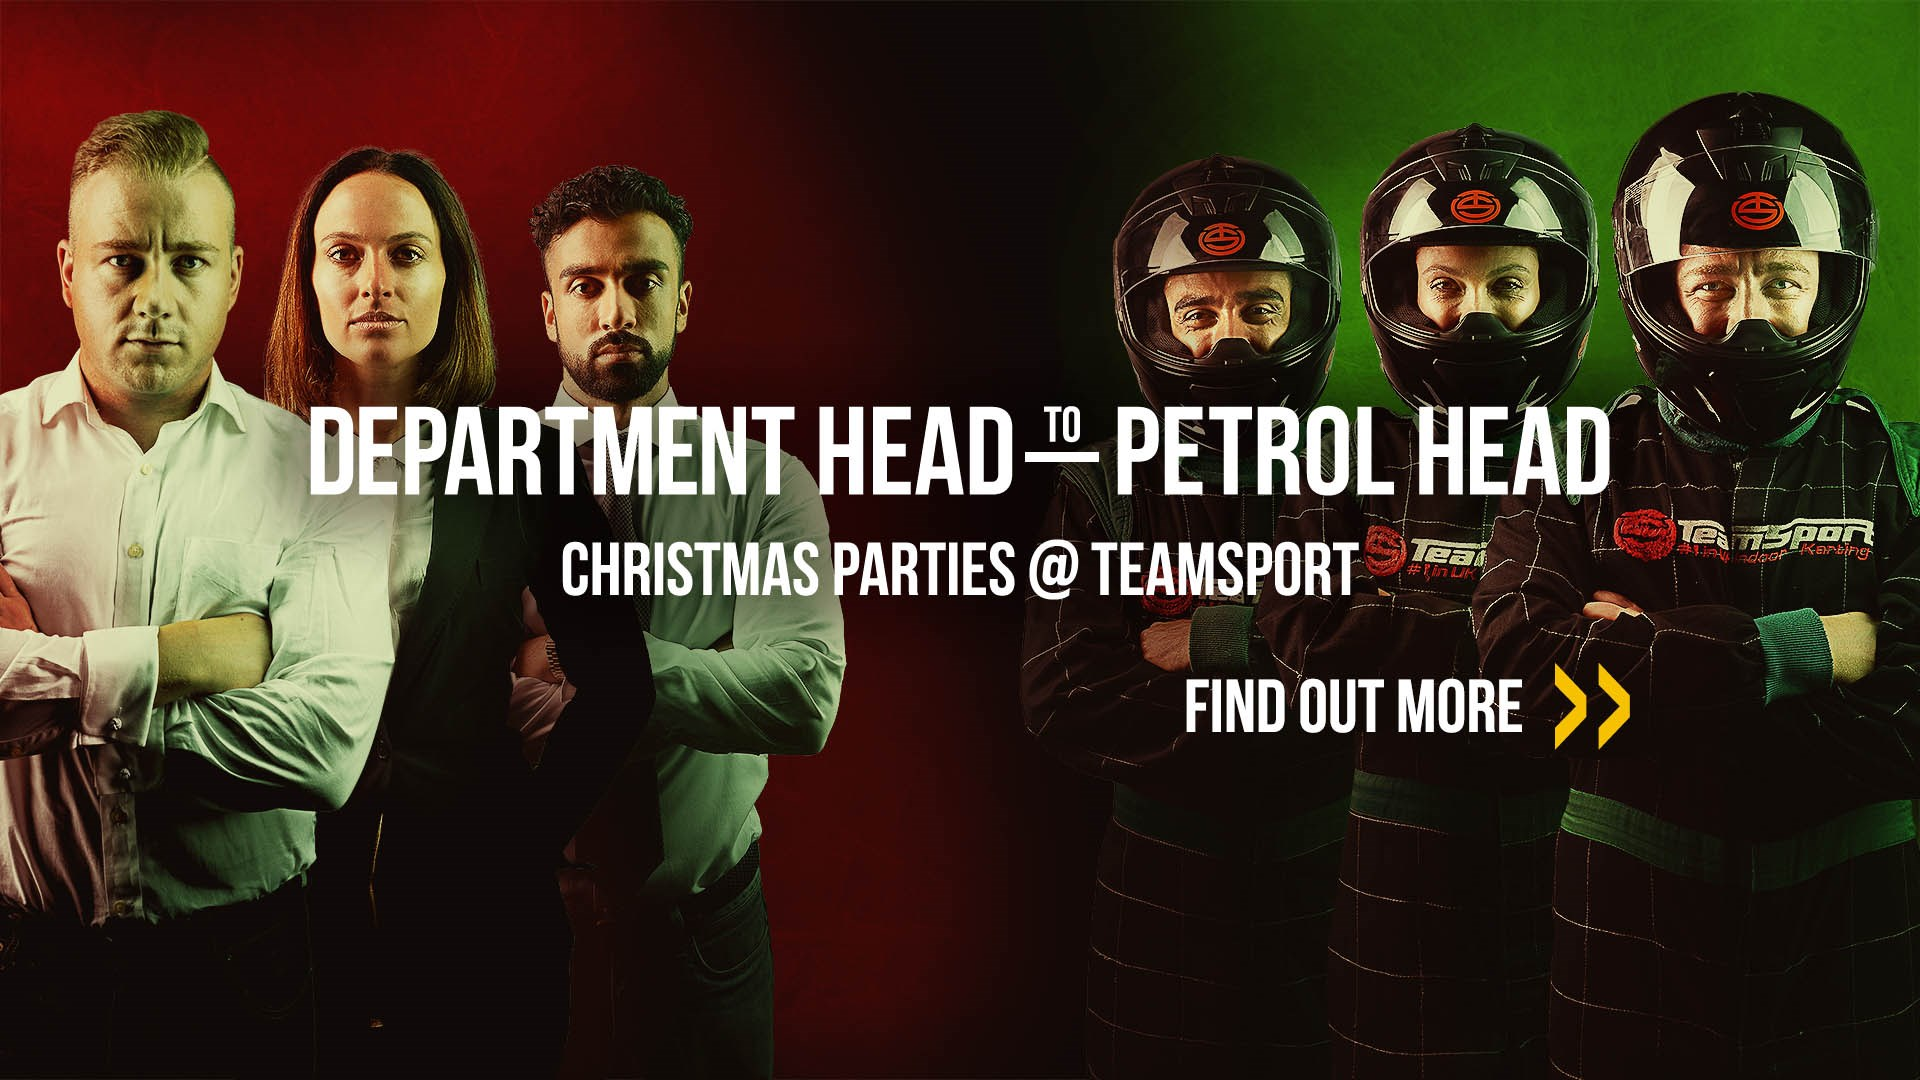 teamsport_go-karting_christmas-party_1920x1080-min-min.jpg